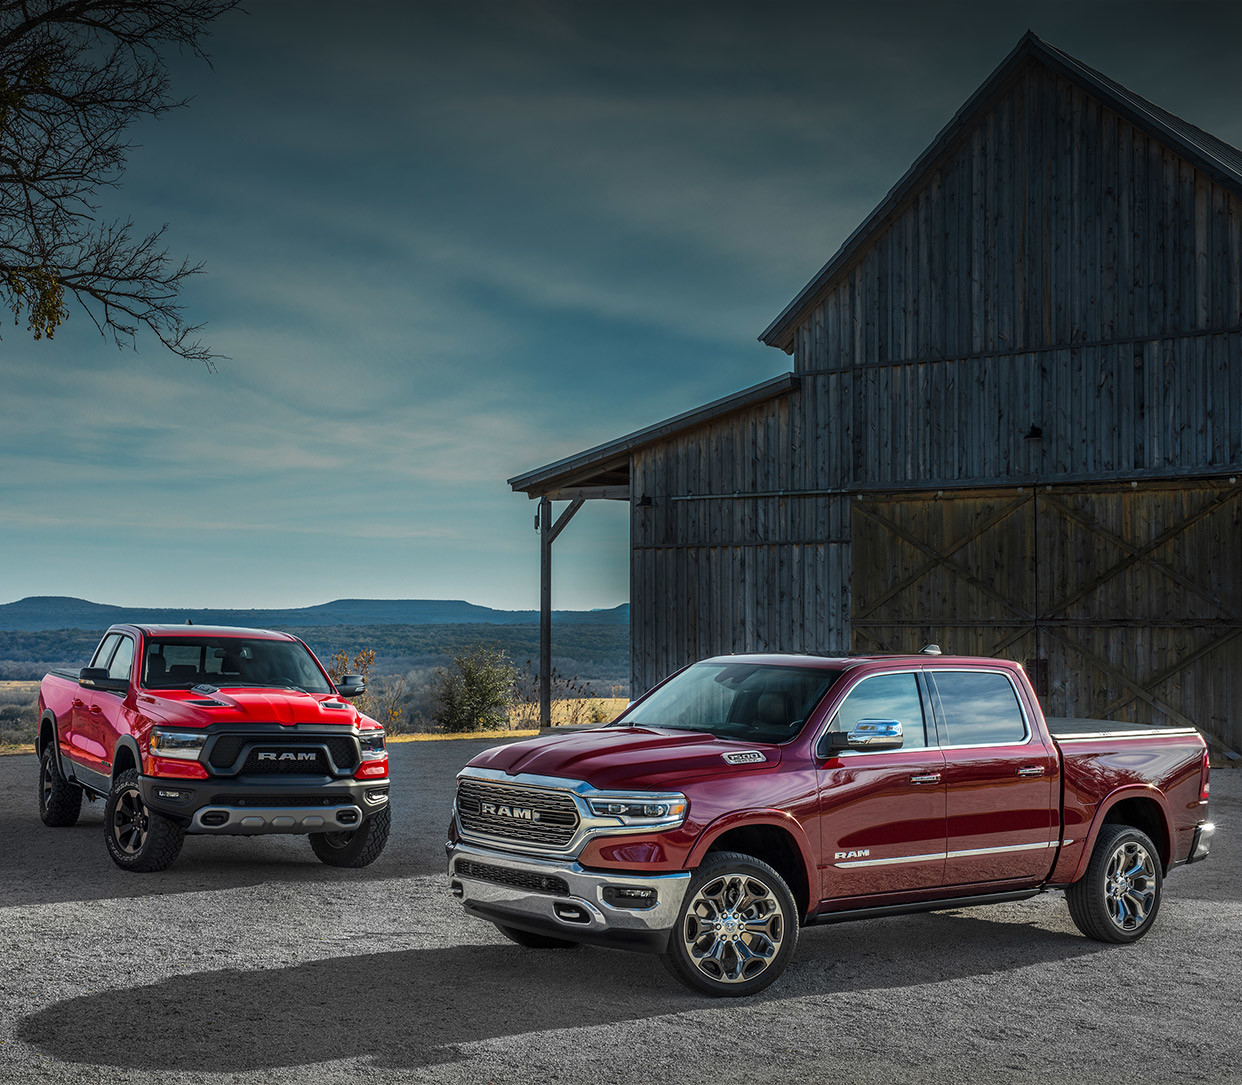 Two 2020 Ram 1500 parked in front of a barn.